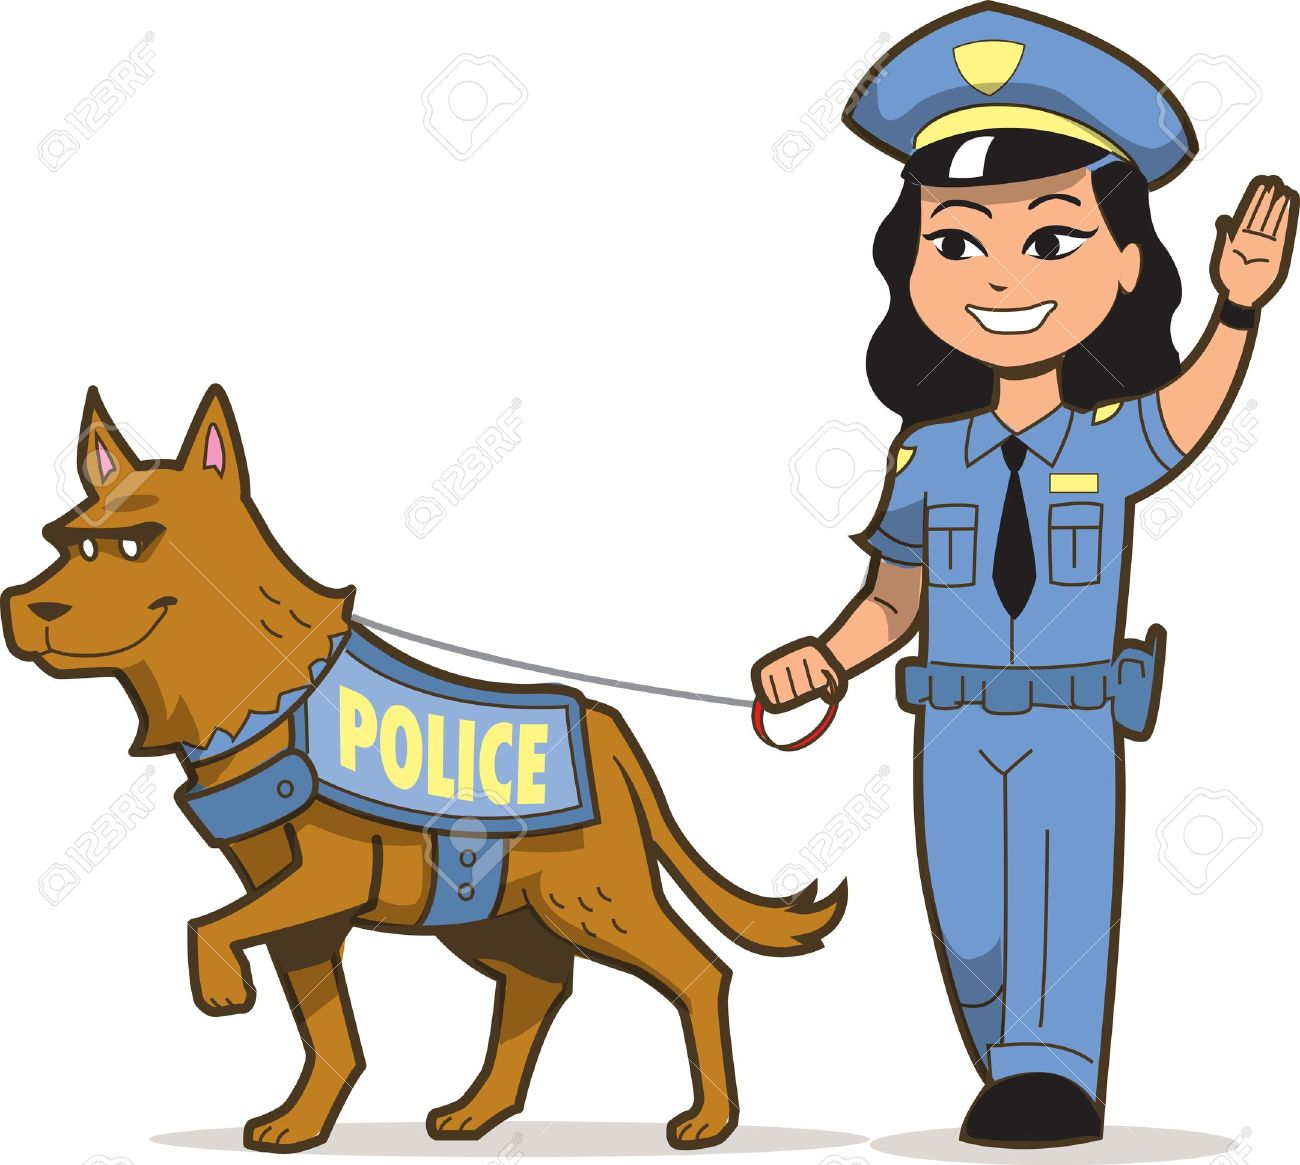 k 9 police dog and asian female police officer royalty free cliparts rh 123rf com free clip art police officer free clip art police officer